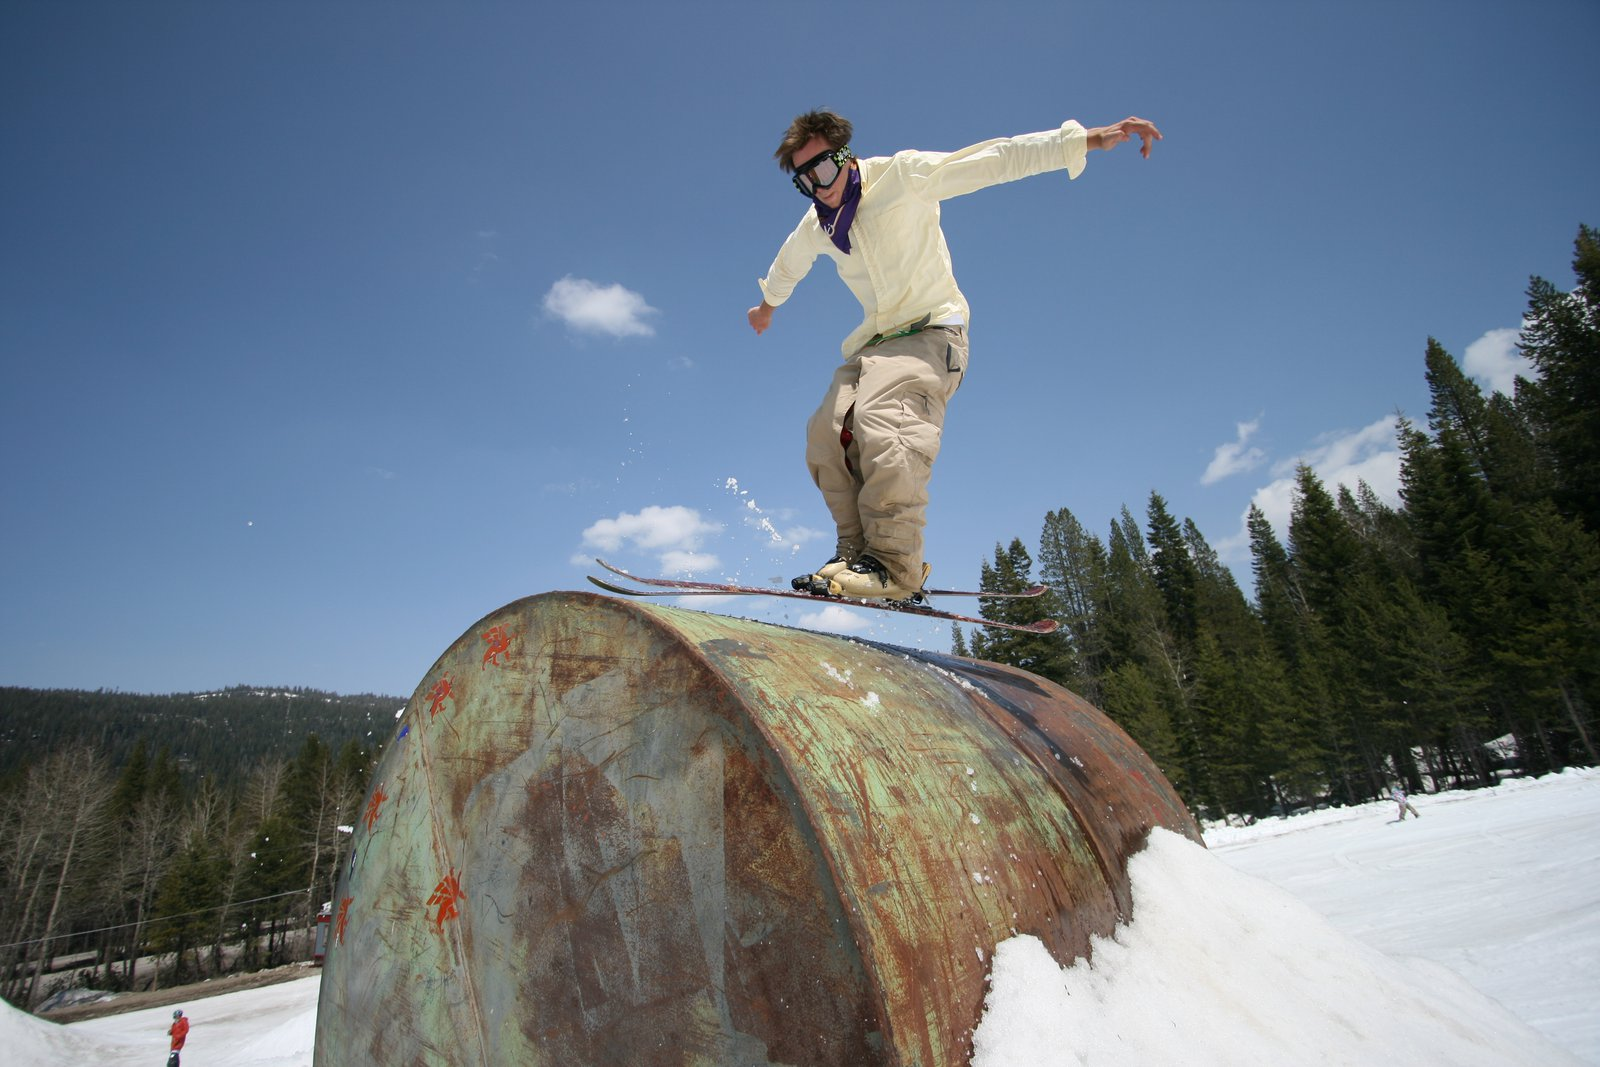 Switchup on the jib barrel